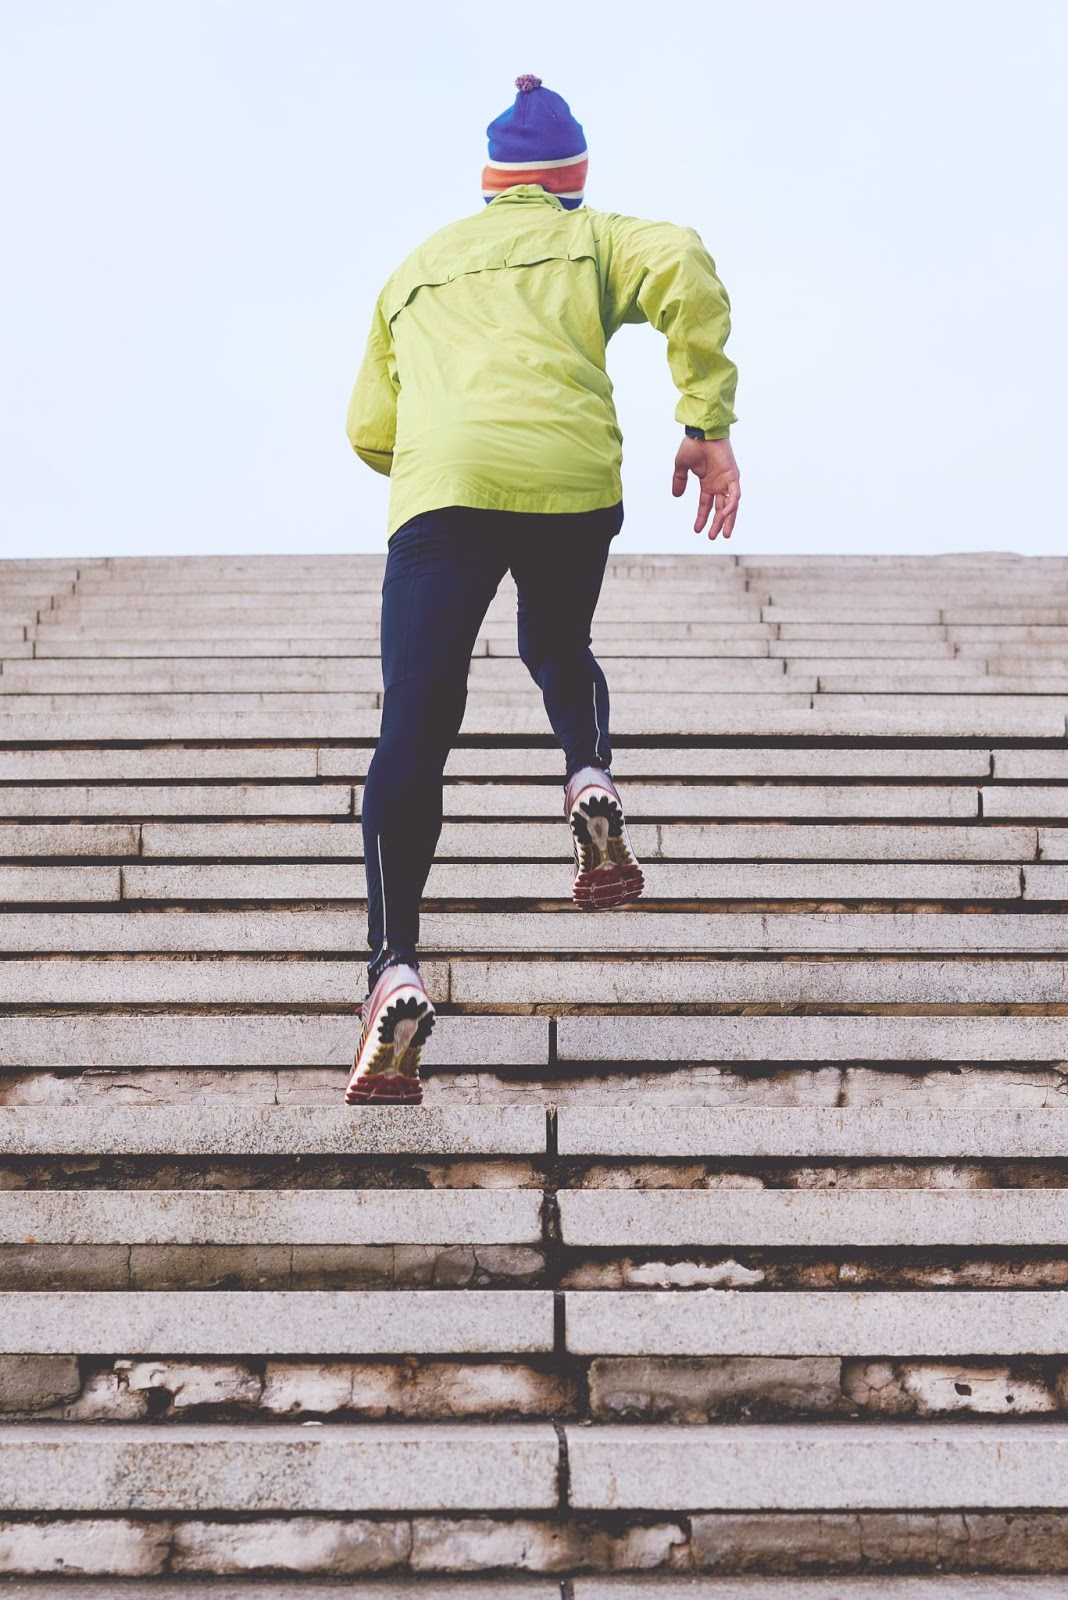 a person running up a set of stairs